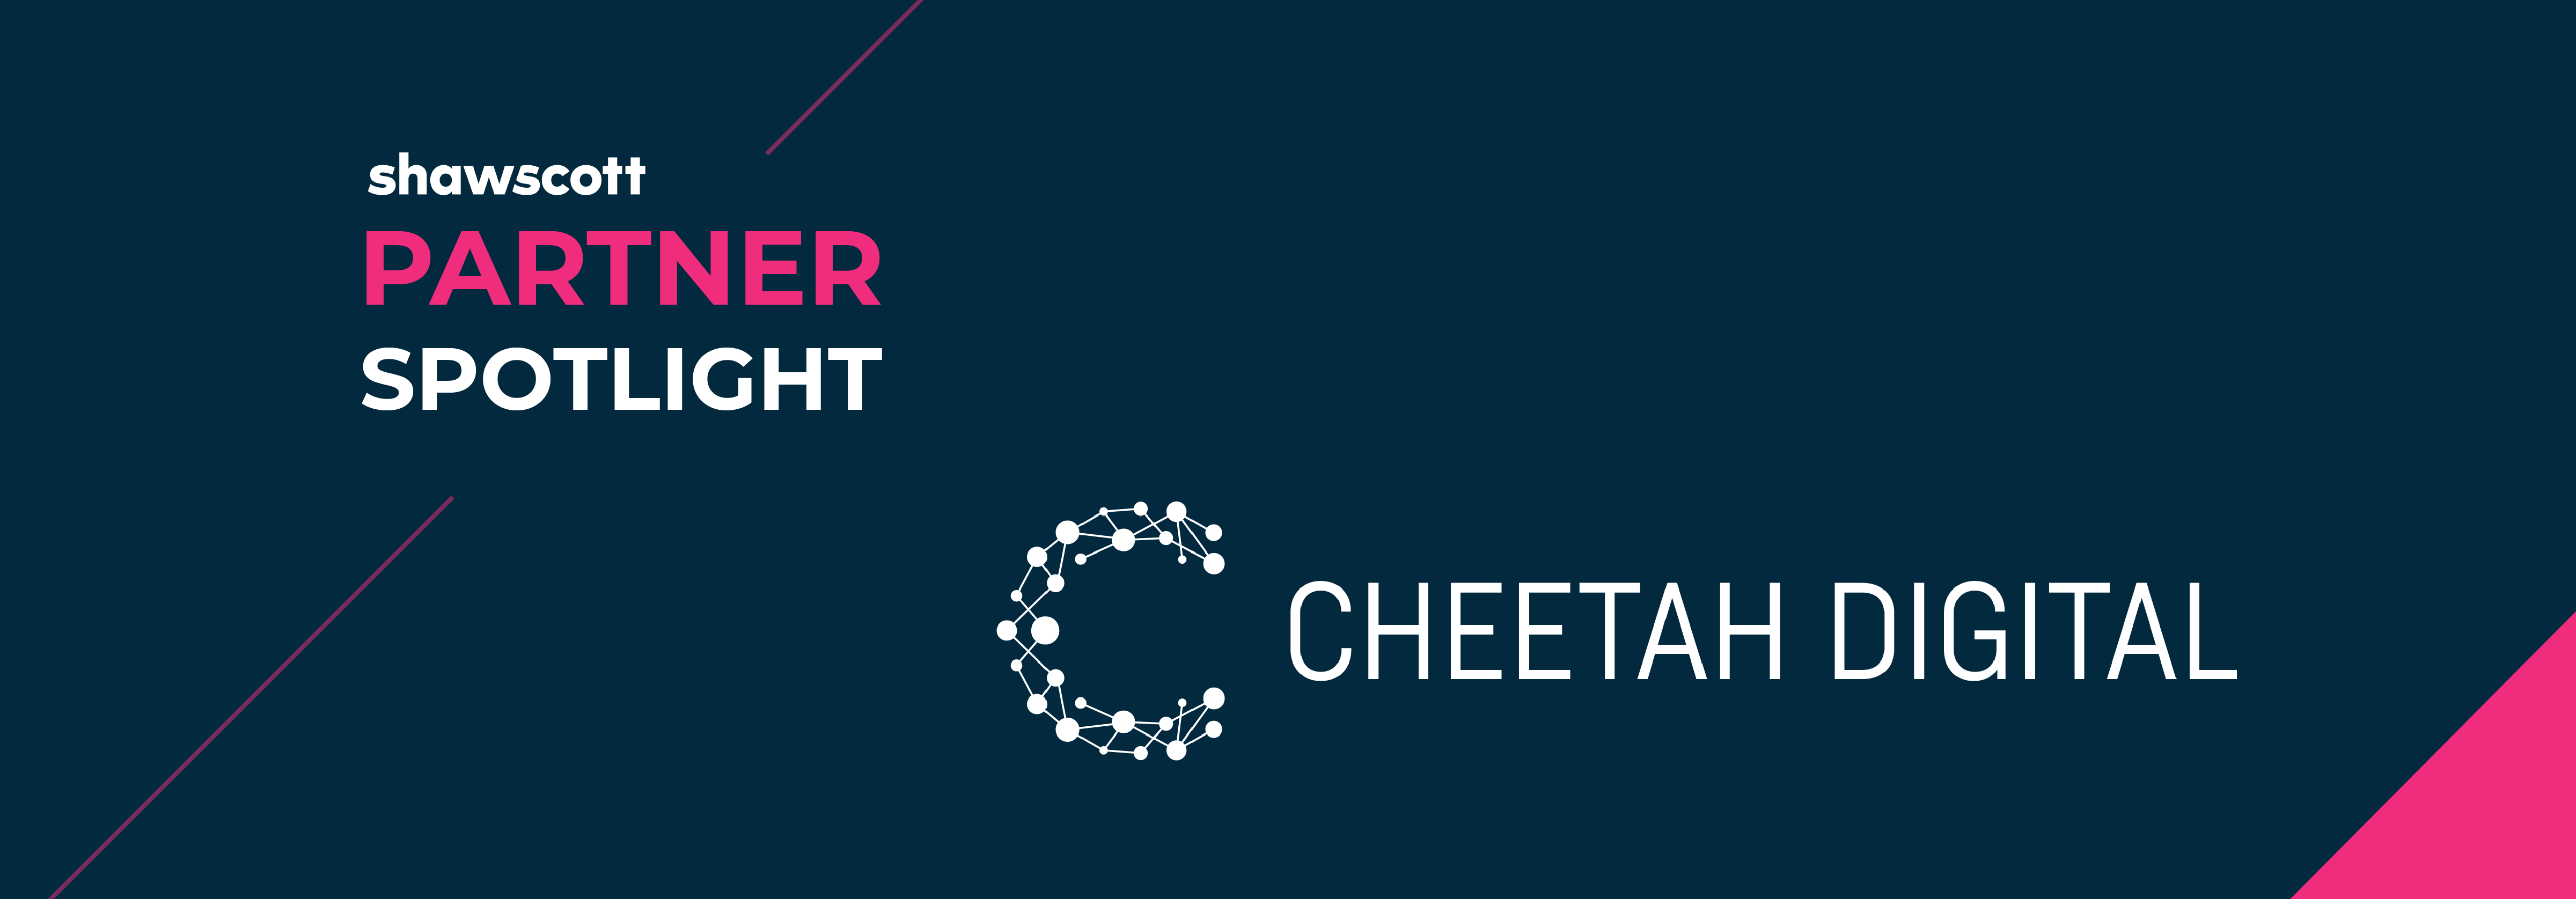 Partner Spotlight - Cheetah Digital